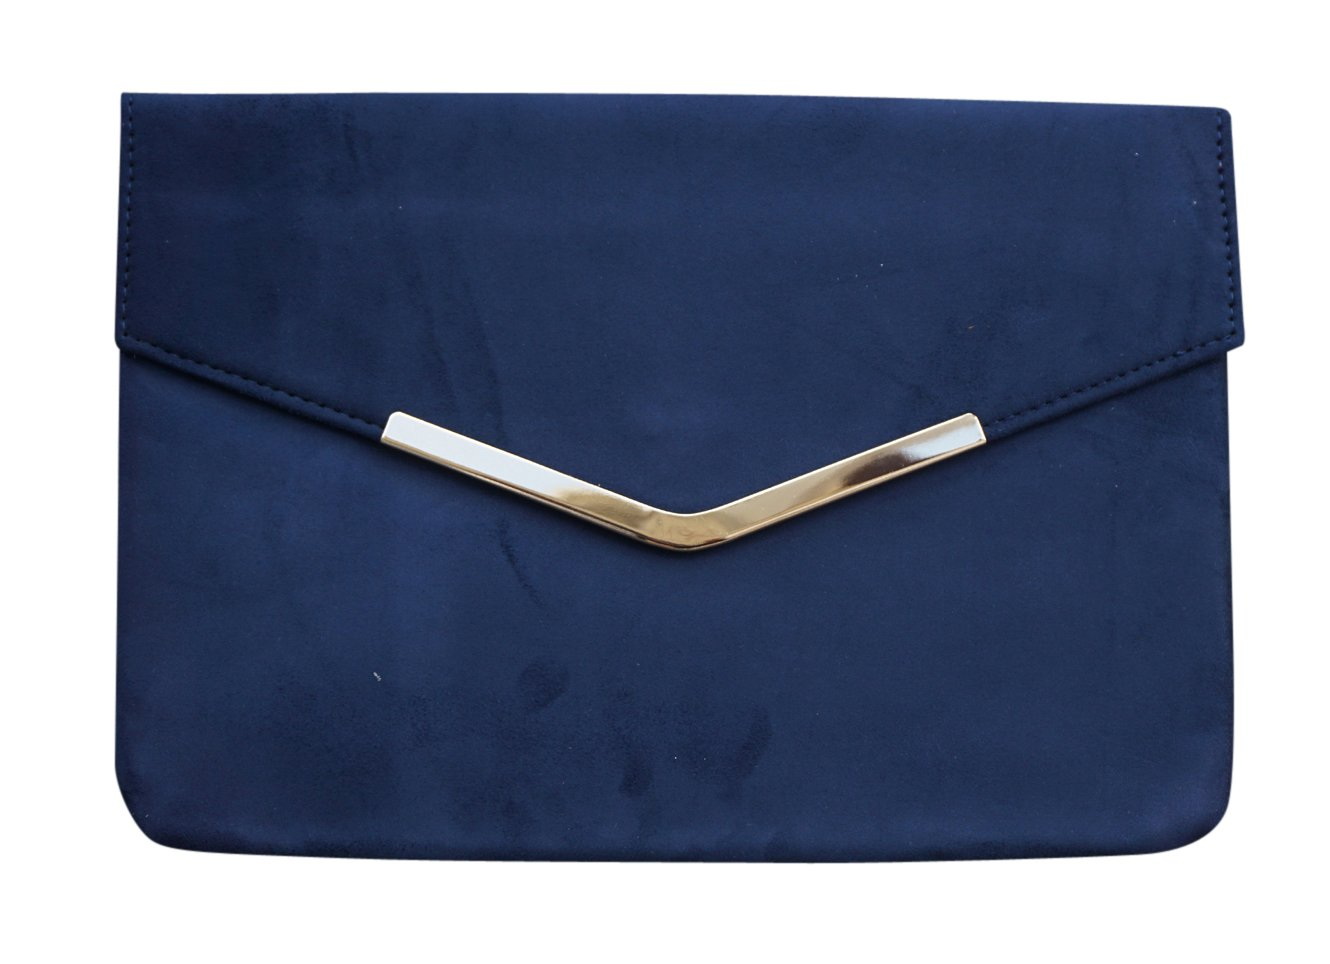 Chicastic Suede Envelope Clutch Purse - Navy Blue